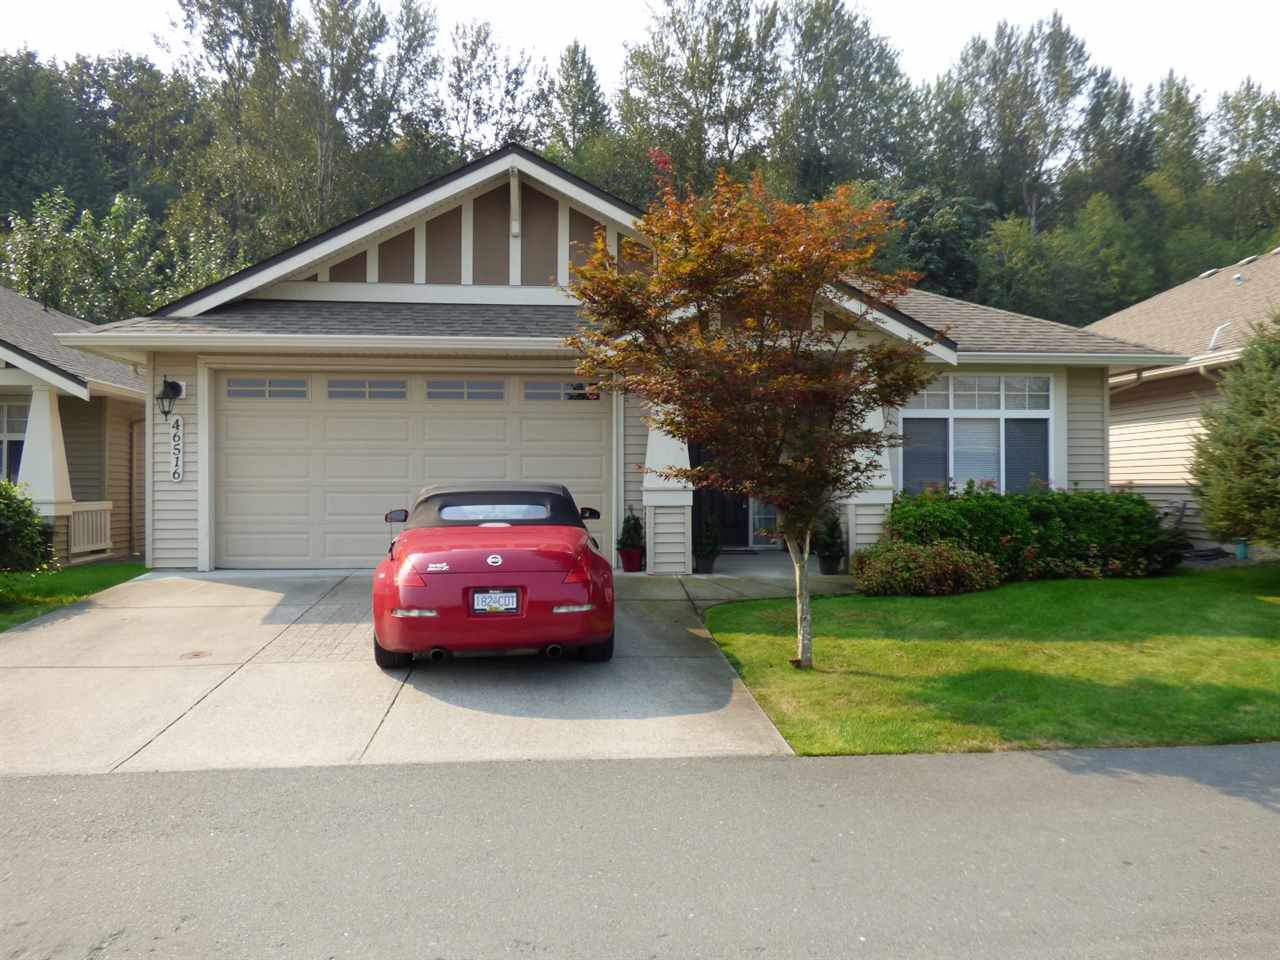 Main Photo: 46516 HEARTHSTONE Avenue in Chilliwack: Sardis East Vedder Rd House for sale (Sardis)  : MLS®# R2300942